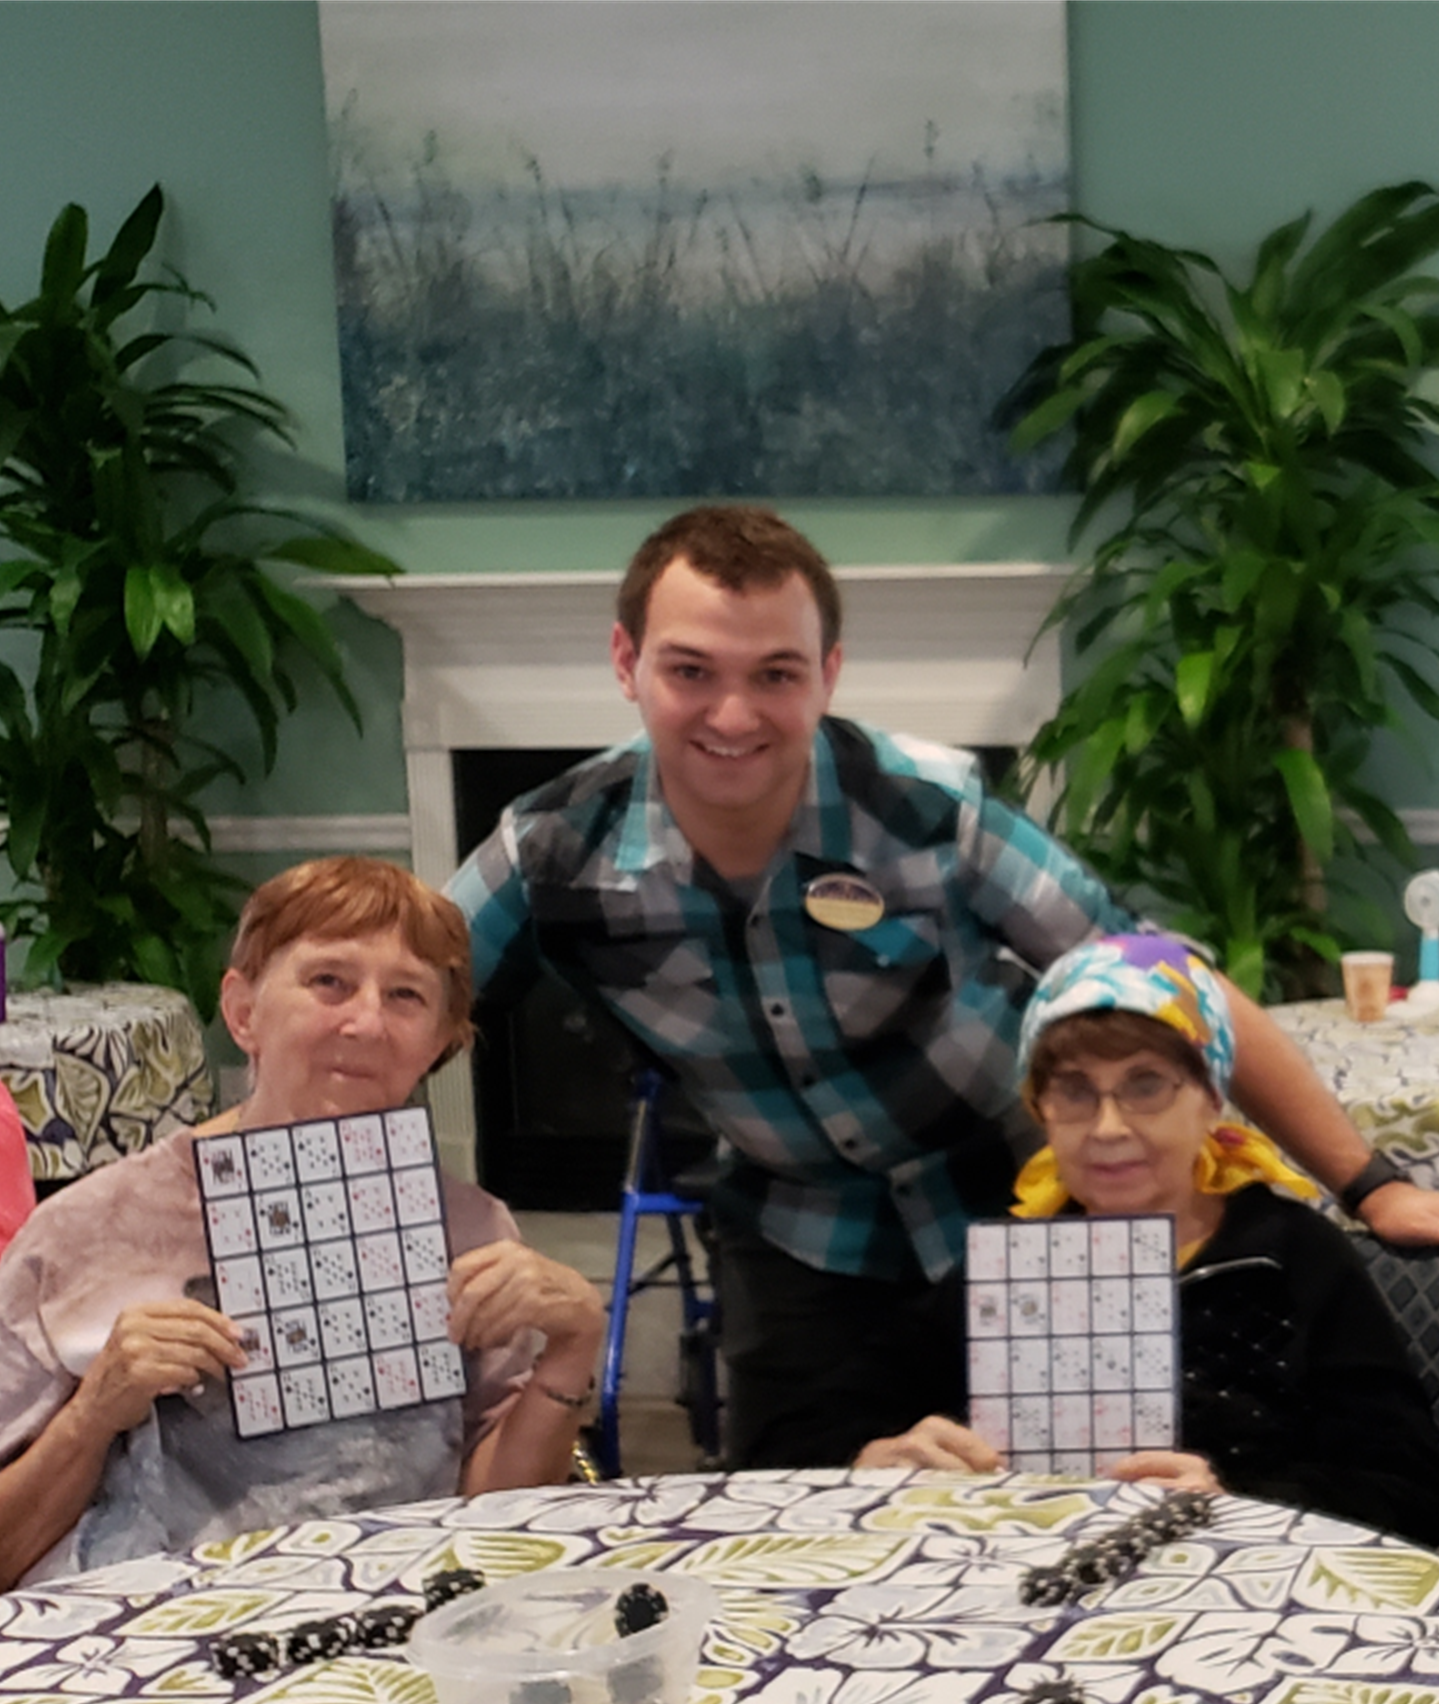 Seniors having fun at Cabot Cove of Largo Assisted Living